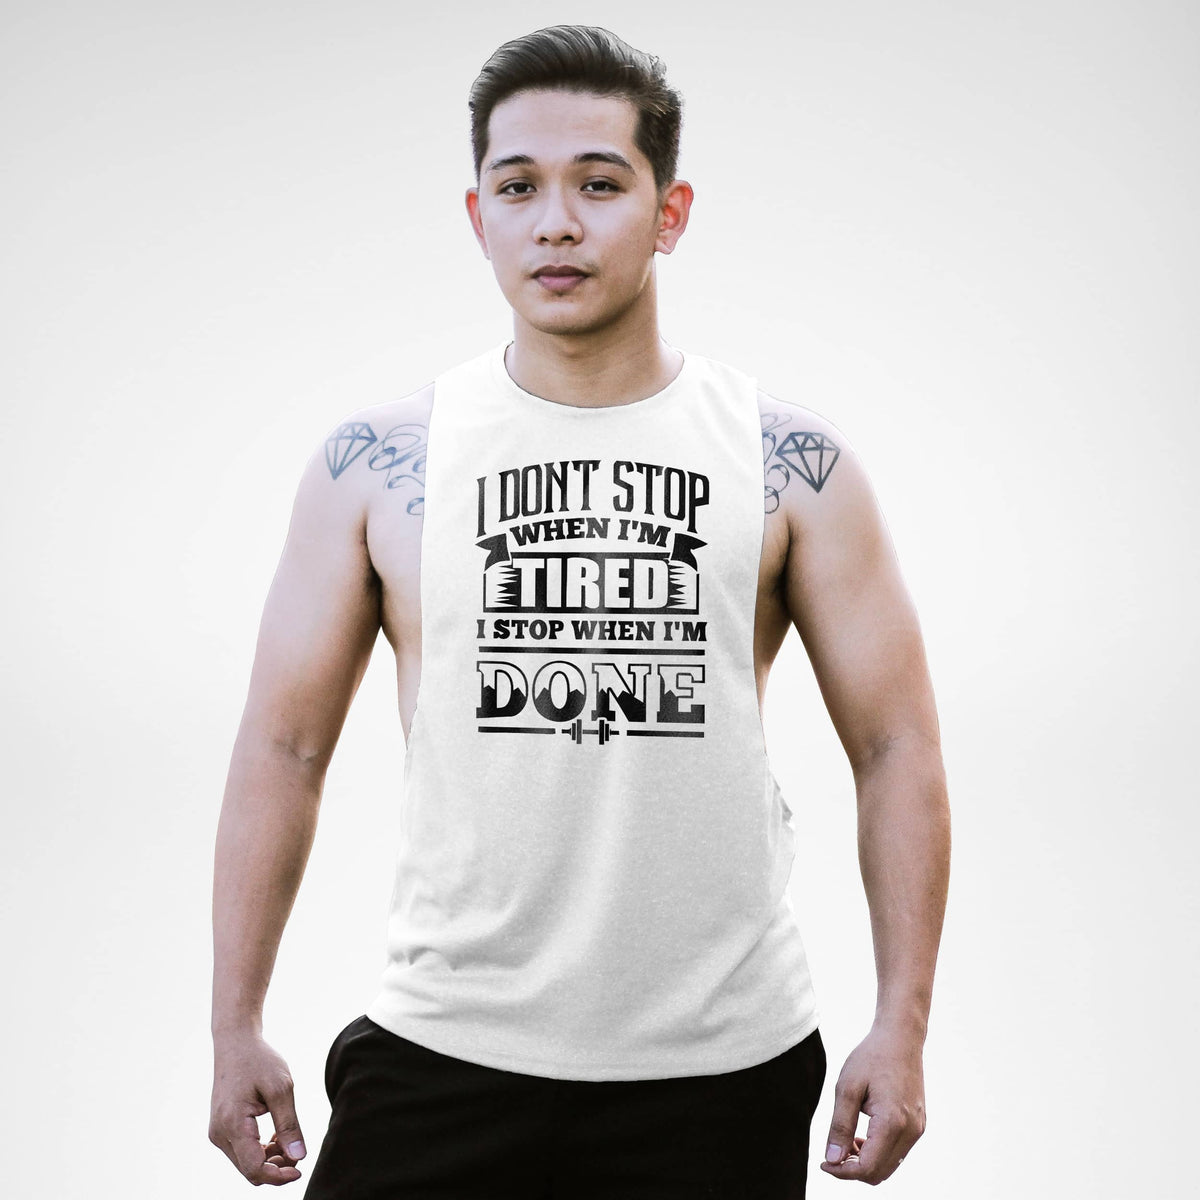 AM124 I Don't Stop When I'm Tired Openside Tank Top